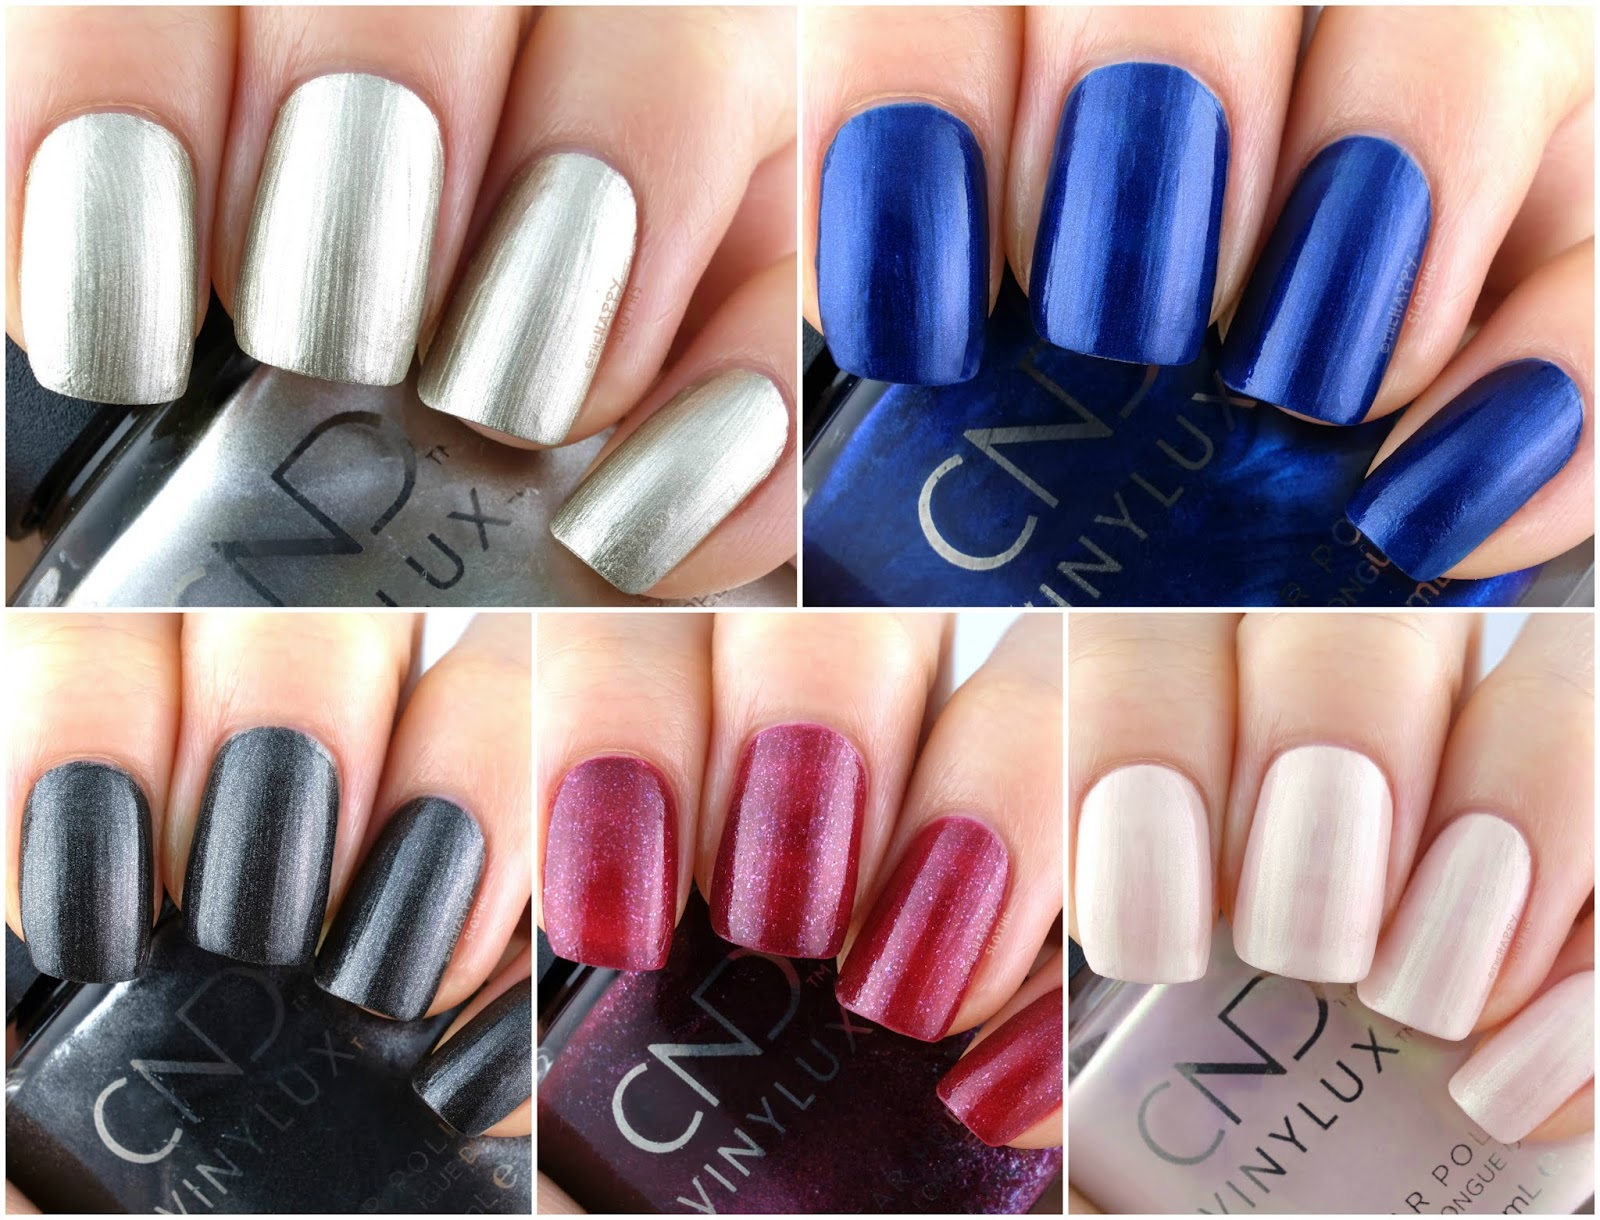 CND | Holiday 2019 Crystal Alchemy Collection: Review and Swatches